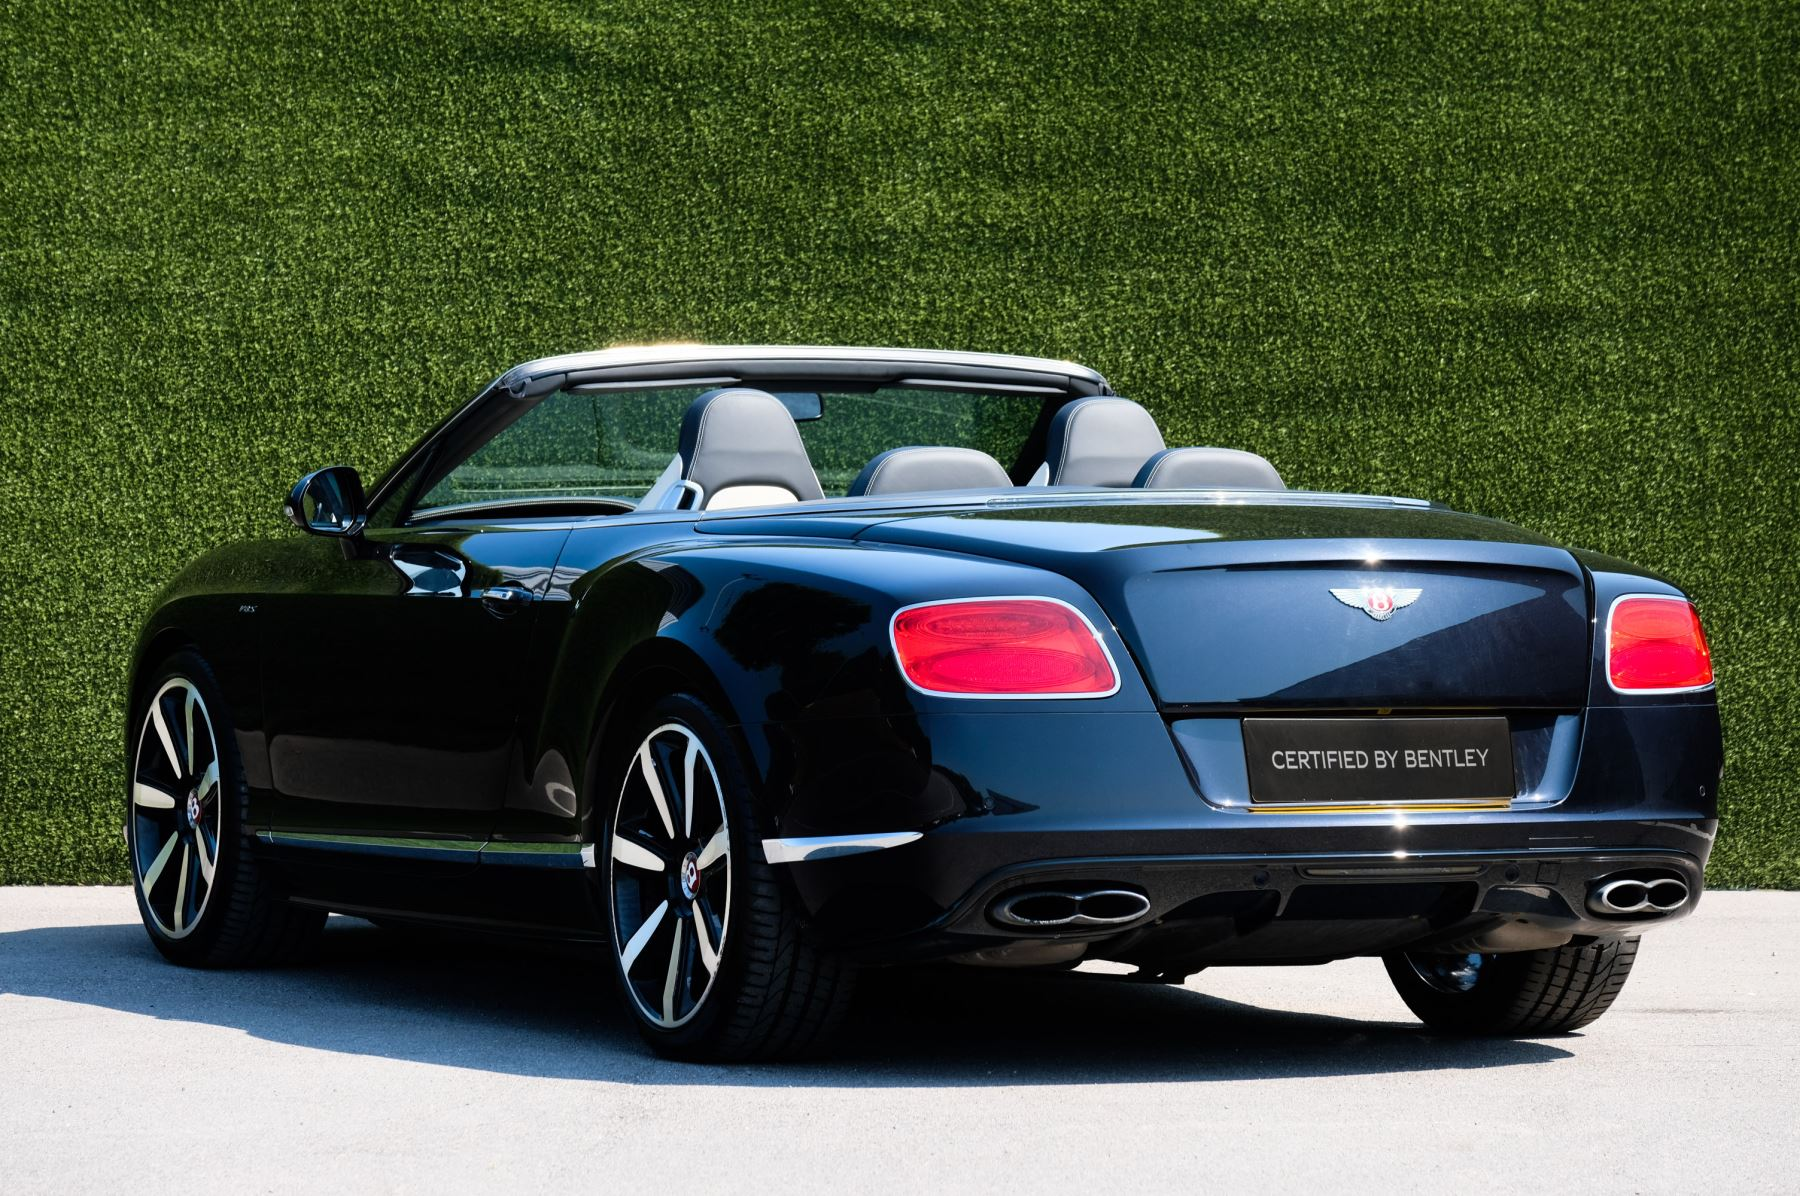 Bentley Continental GTC 4.0 V8 S - Mulliner Driving Specification image 5